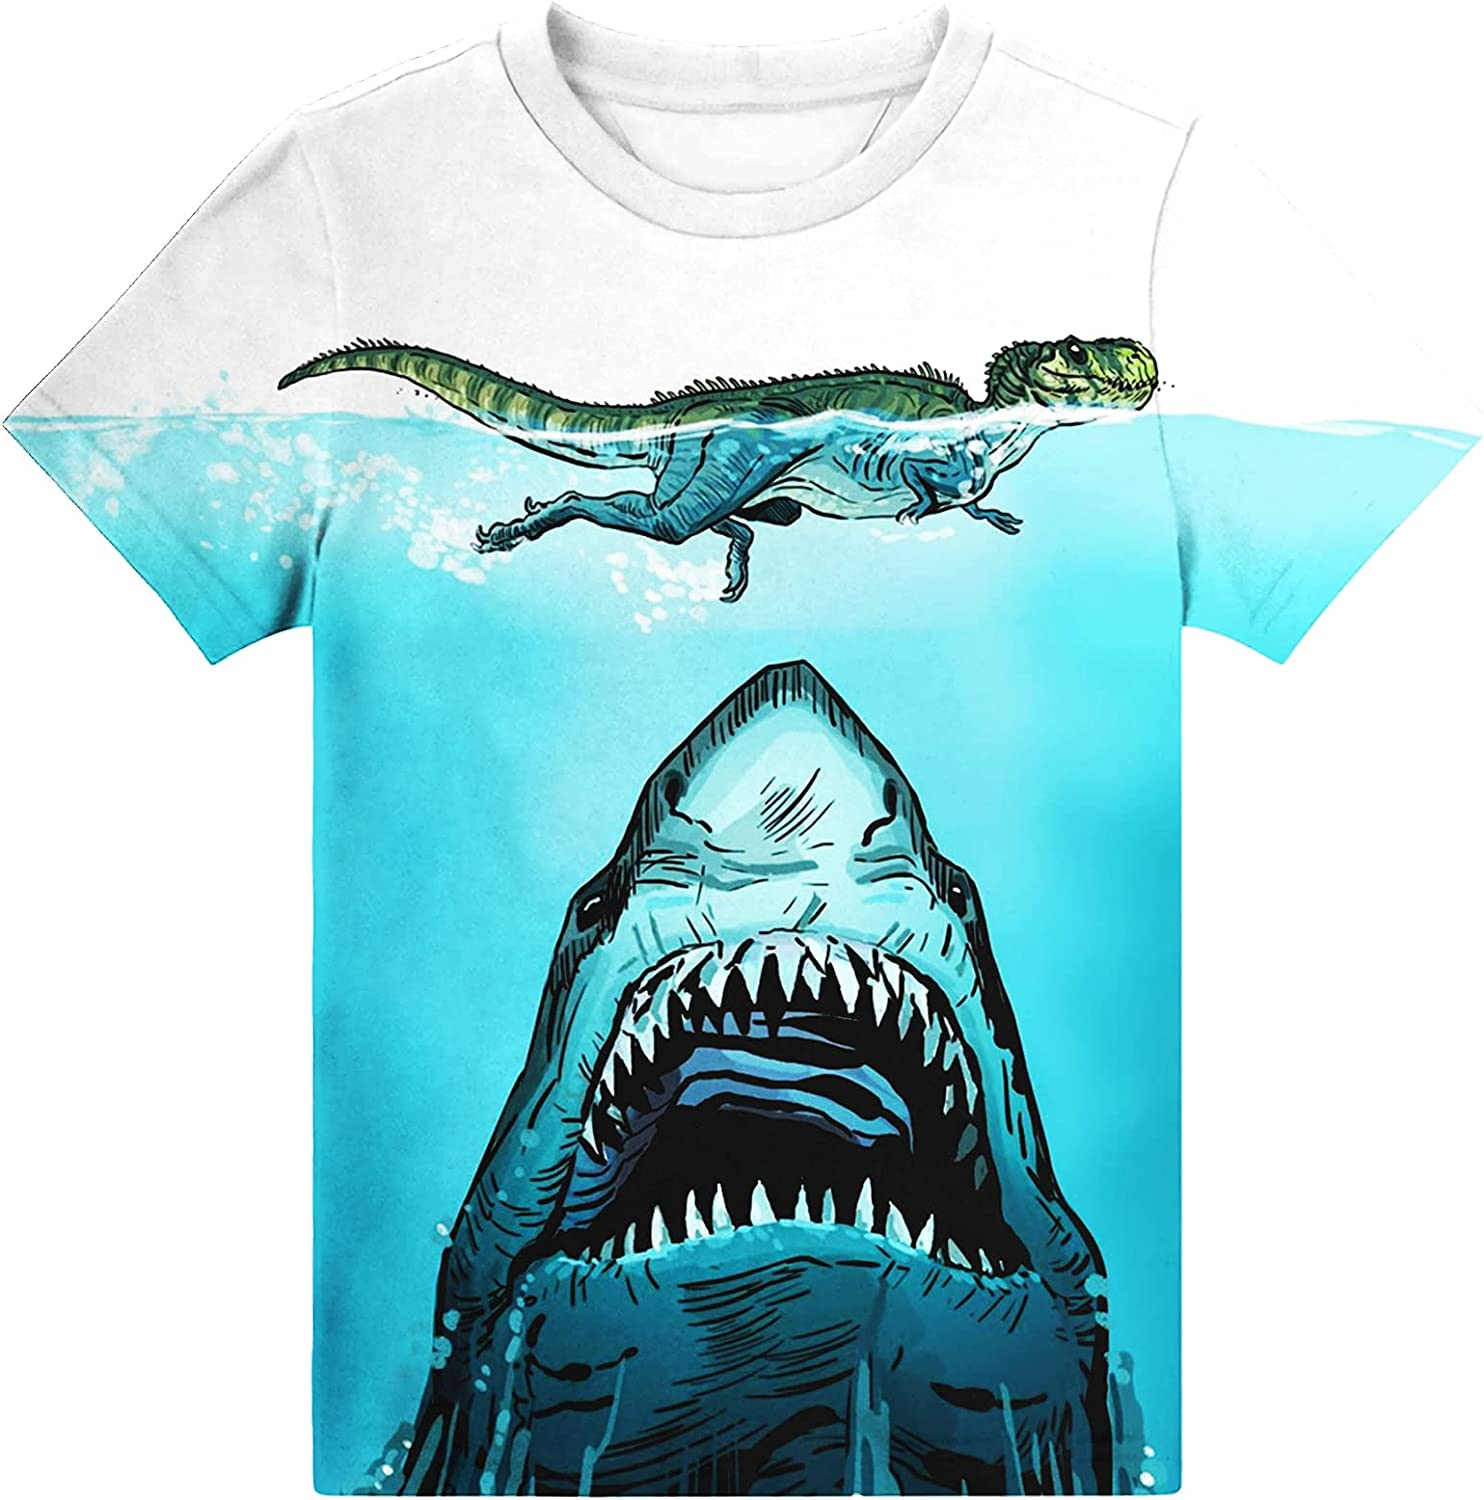 Hgvoetty Boys Girls 3D Shirts Graphic Kids T-Shirt Crewneck Short Sleeve Top Tees for 6-16 Years